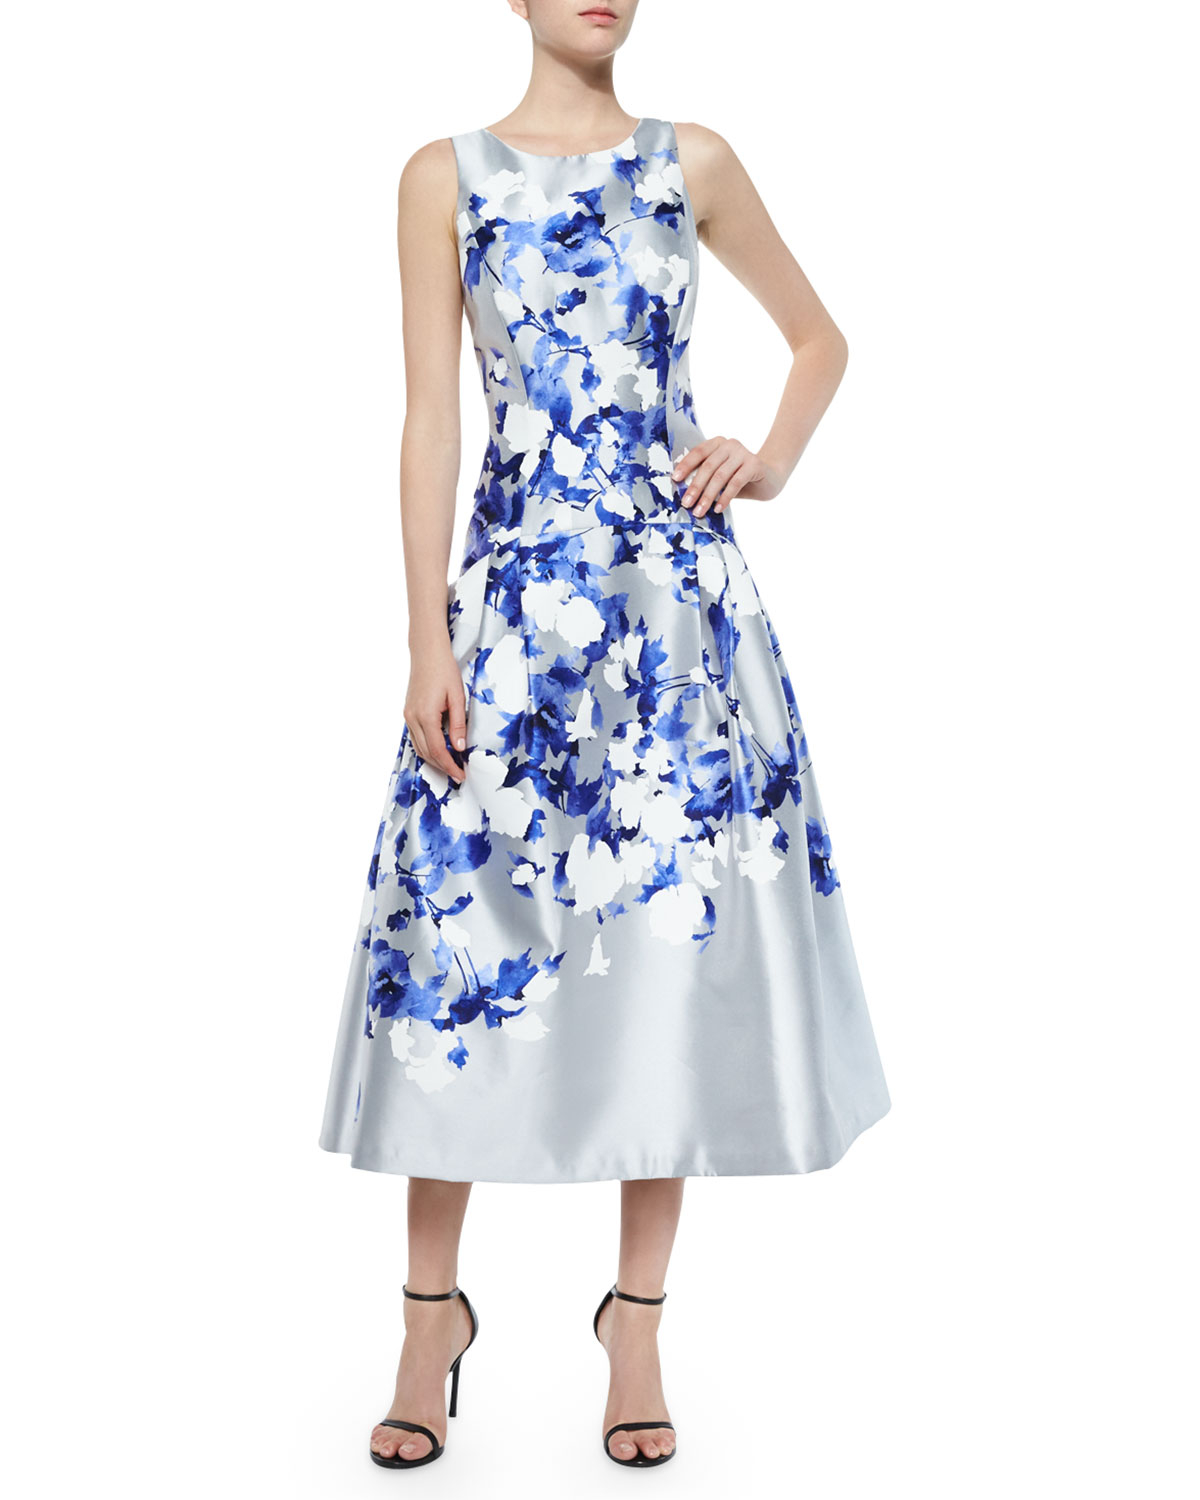 Lyst - Kay Unger Floral-Print Satin Dress in Blue